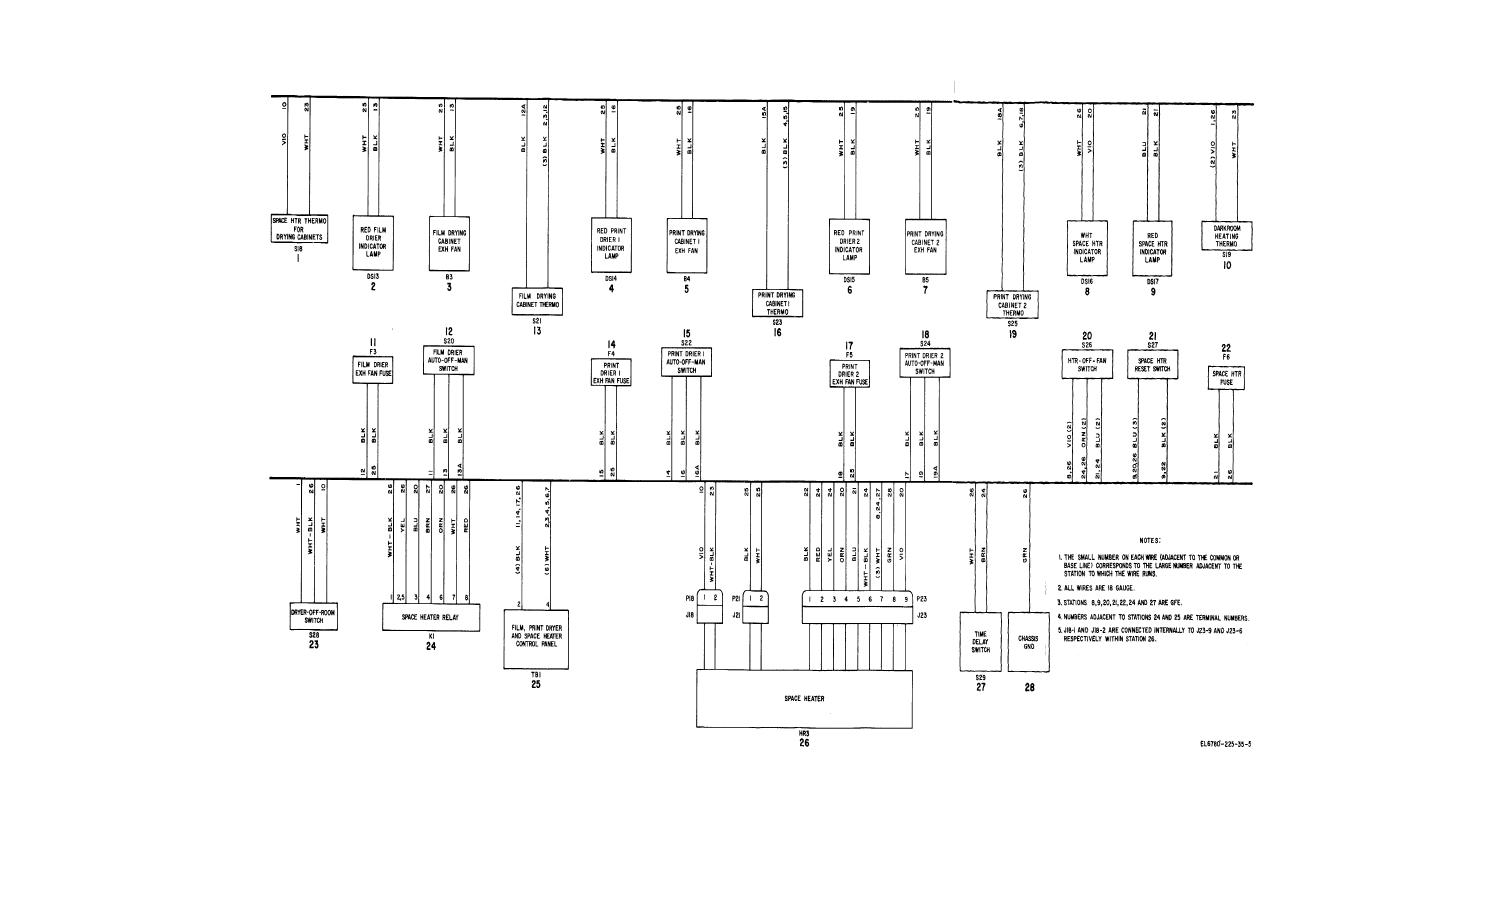 TM 11 6780 225 350135im figure 5 2 film and print drier and space heater control panel space heater wiring diagram at gsmx.co